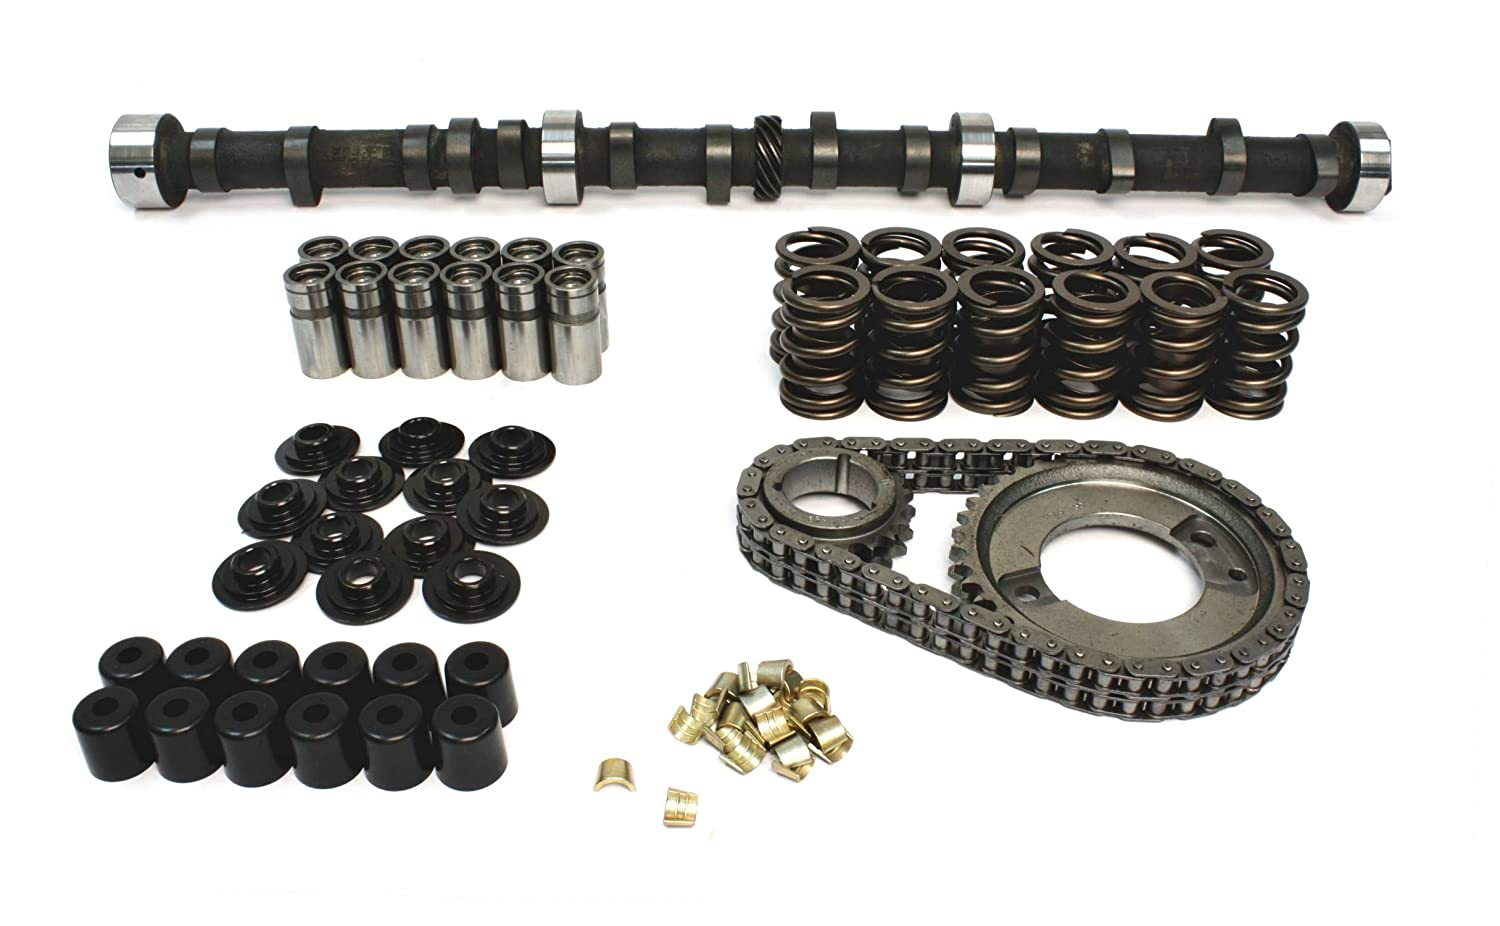 COMP Cams CL68-200-4 High Energy 206//206 Hydraulic Flat Cam and Lifter Kit for AMC 199-258//4.0L